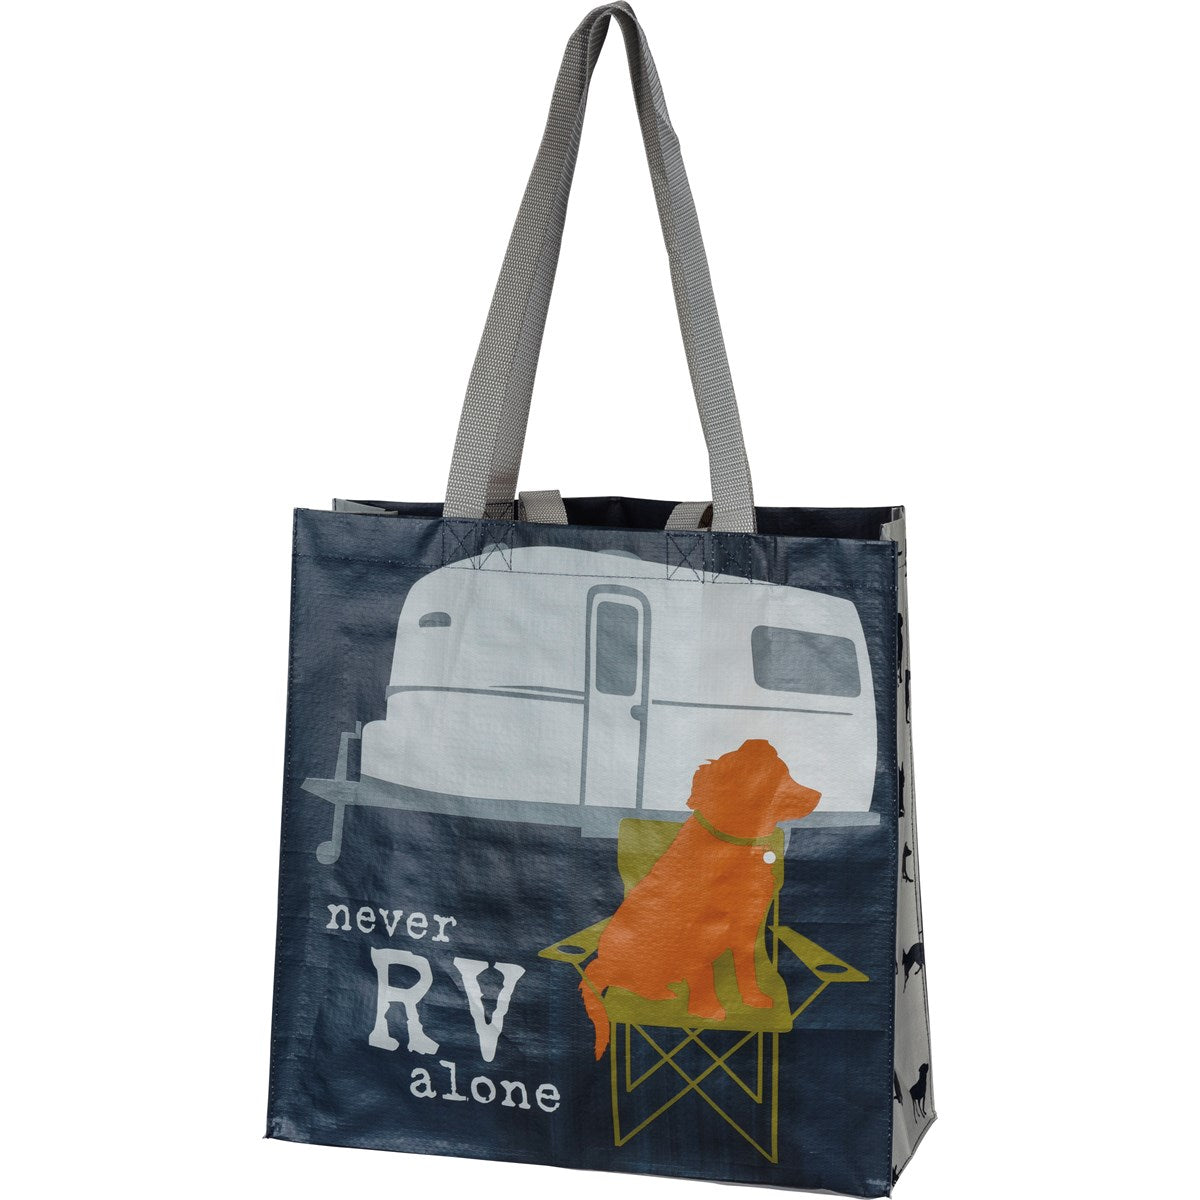 Never RV Alone Shopping Bag